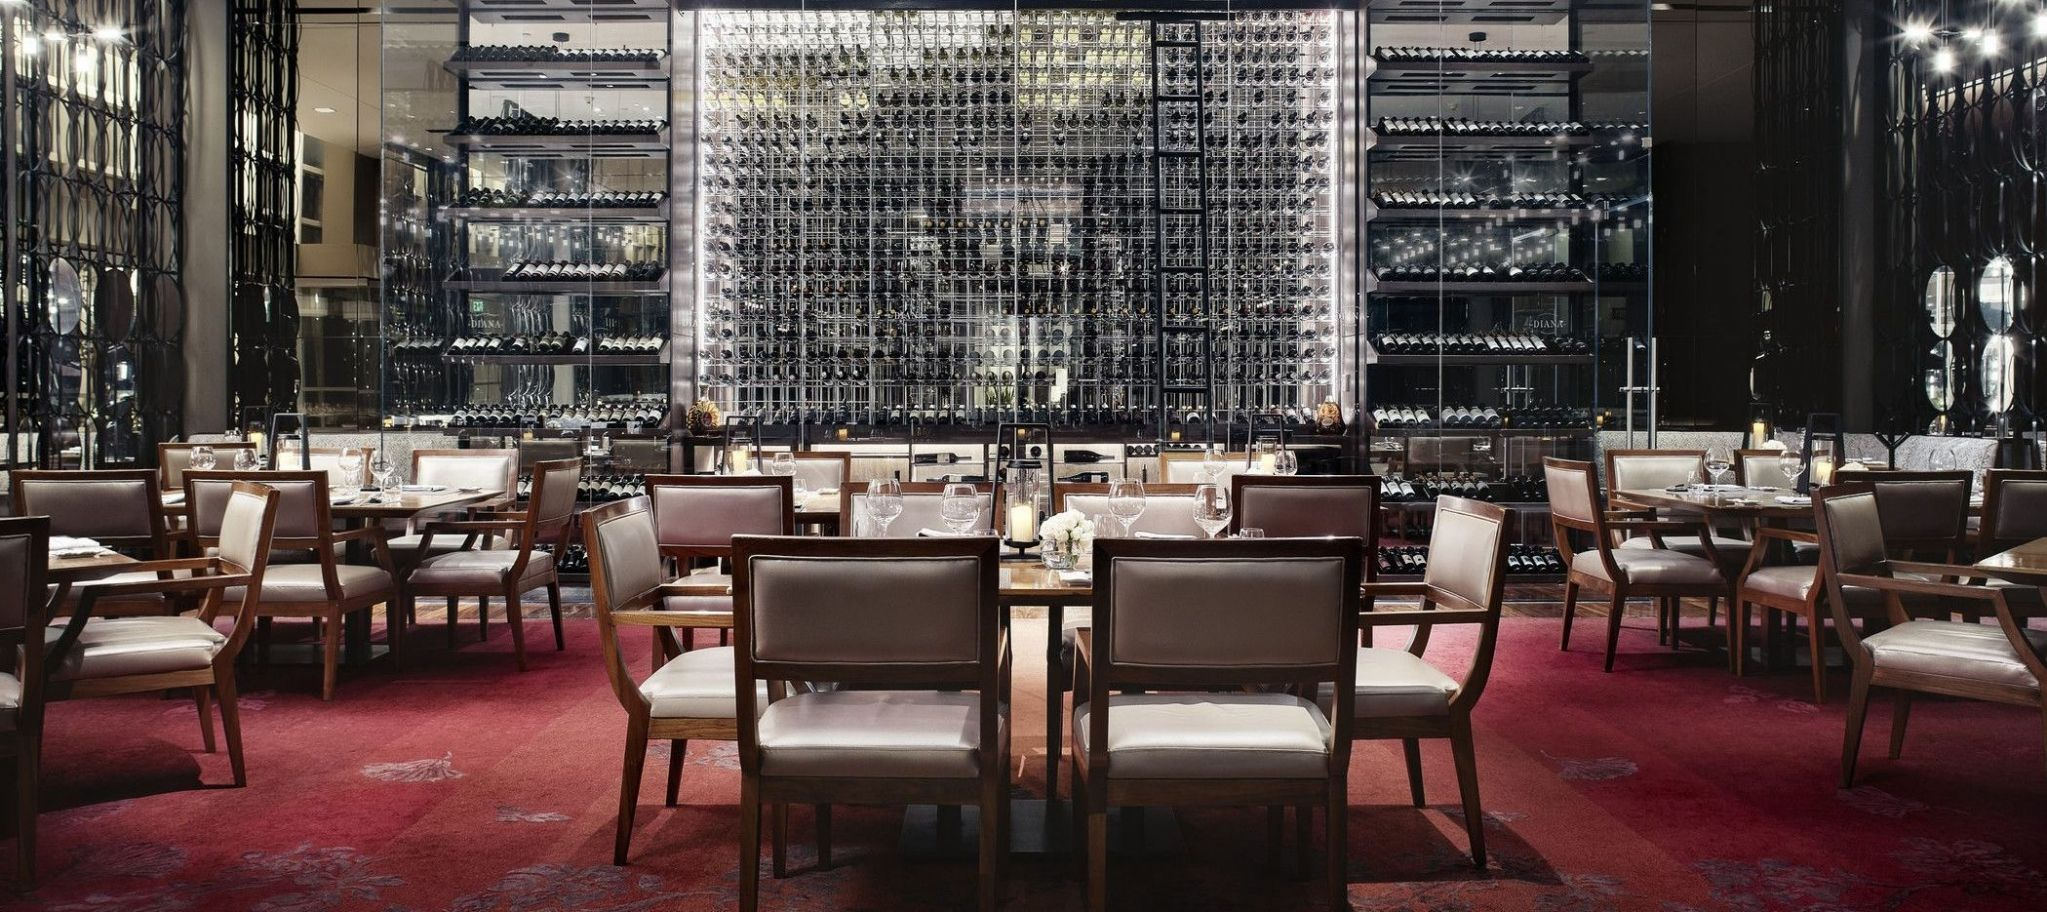 The St Regis Mexico City - Restaurante Diana